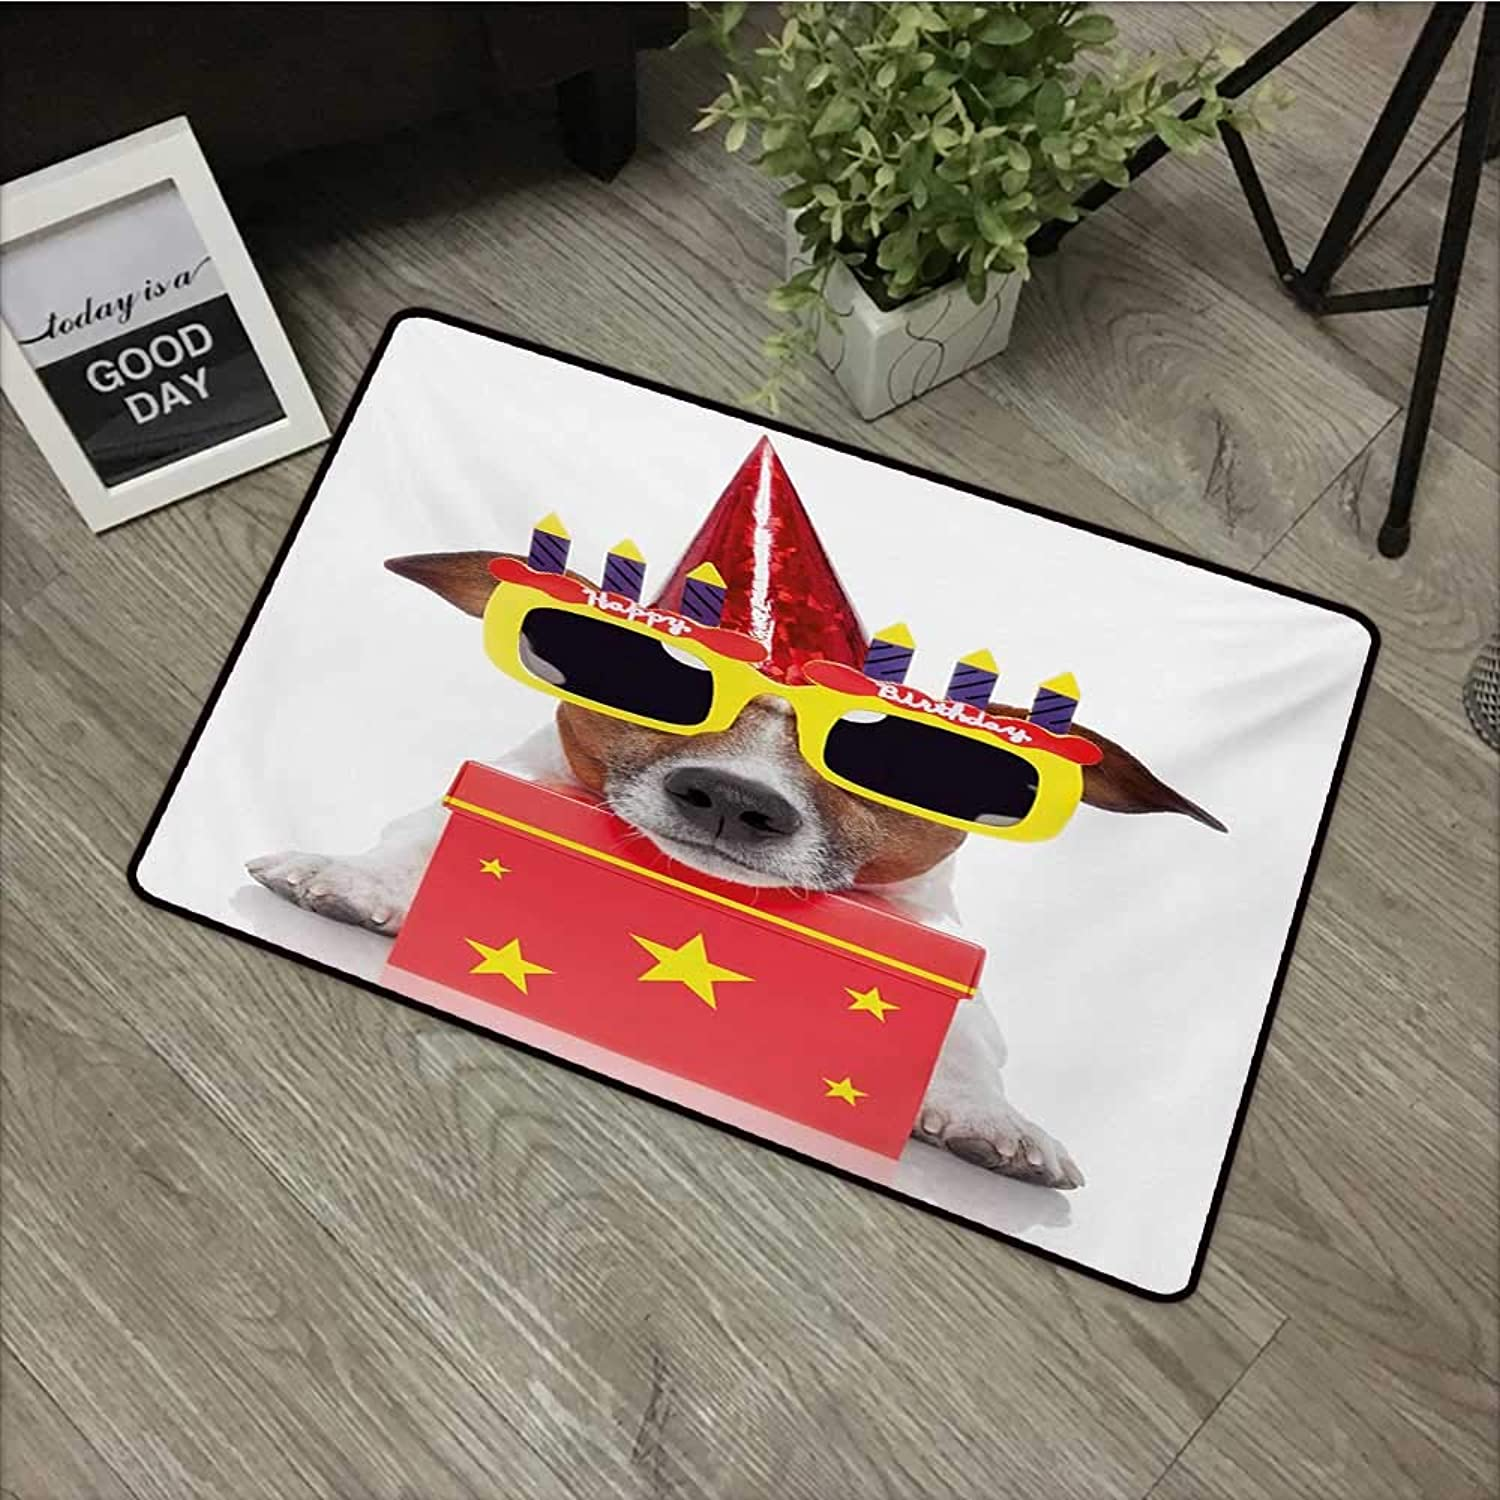 Interior Door mat W35 x L59 INCH Kids Birthday,Happy Party Dog with Sunglasses and Cone Hat Boxes Stars Image Print,Red and Yellow Easy to Clean, no Deformation, no Fading Non-Slip Door Mat Carpet